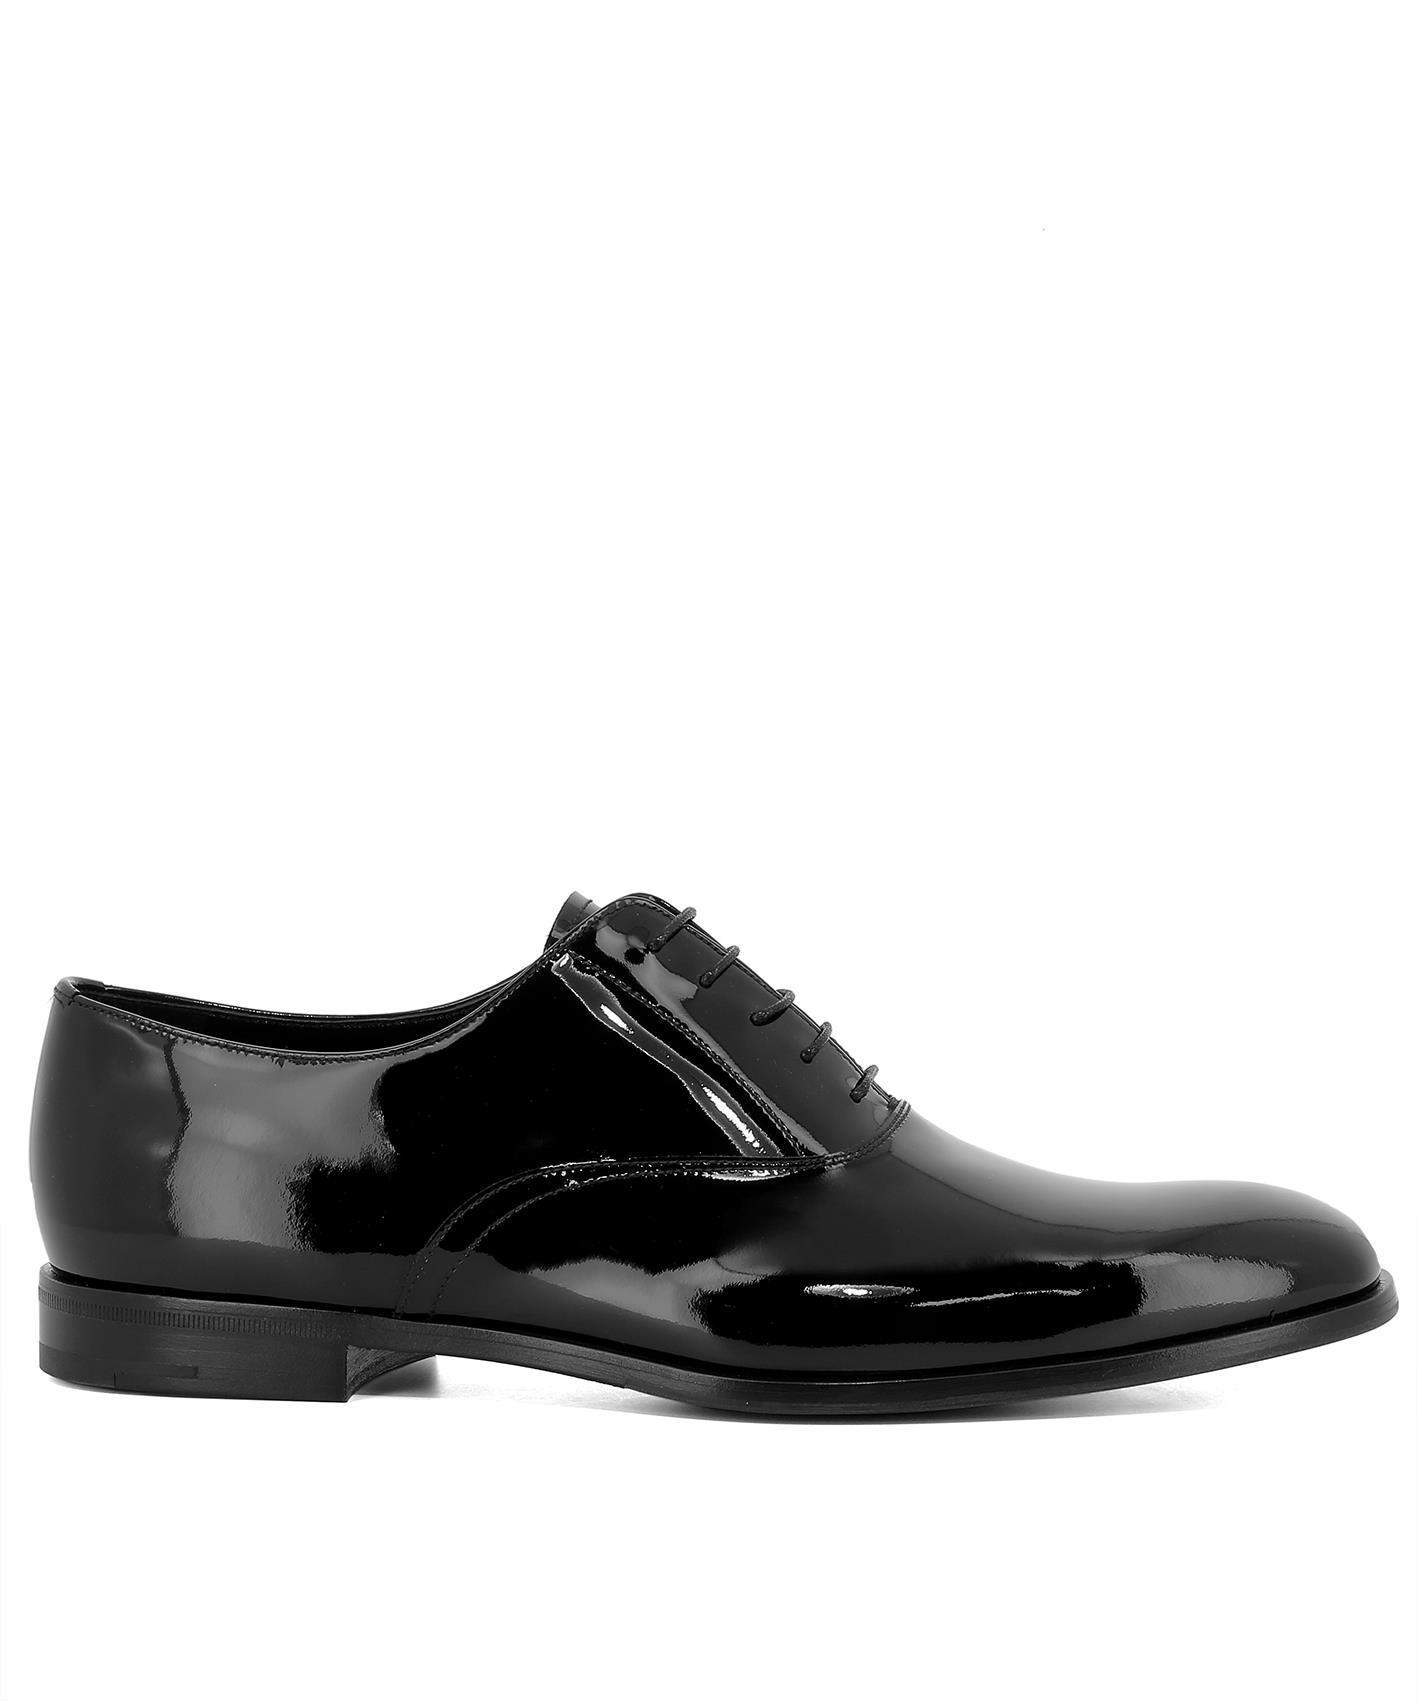 368a75735df0 Lyst - Prada Lace-up Oxford Shoes in Black for Men